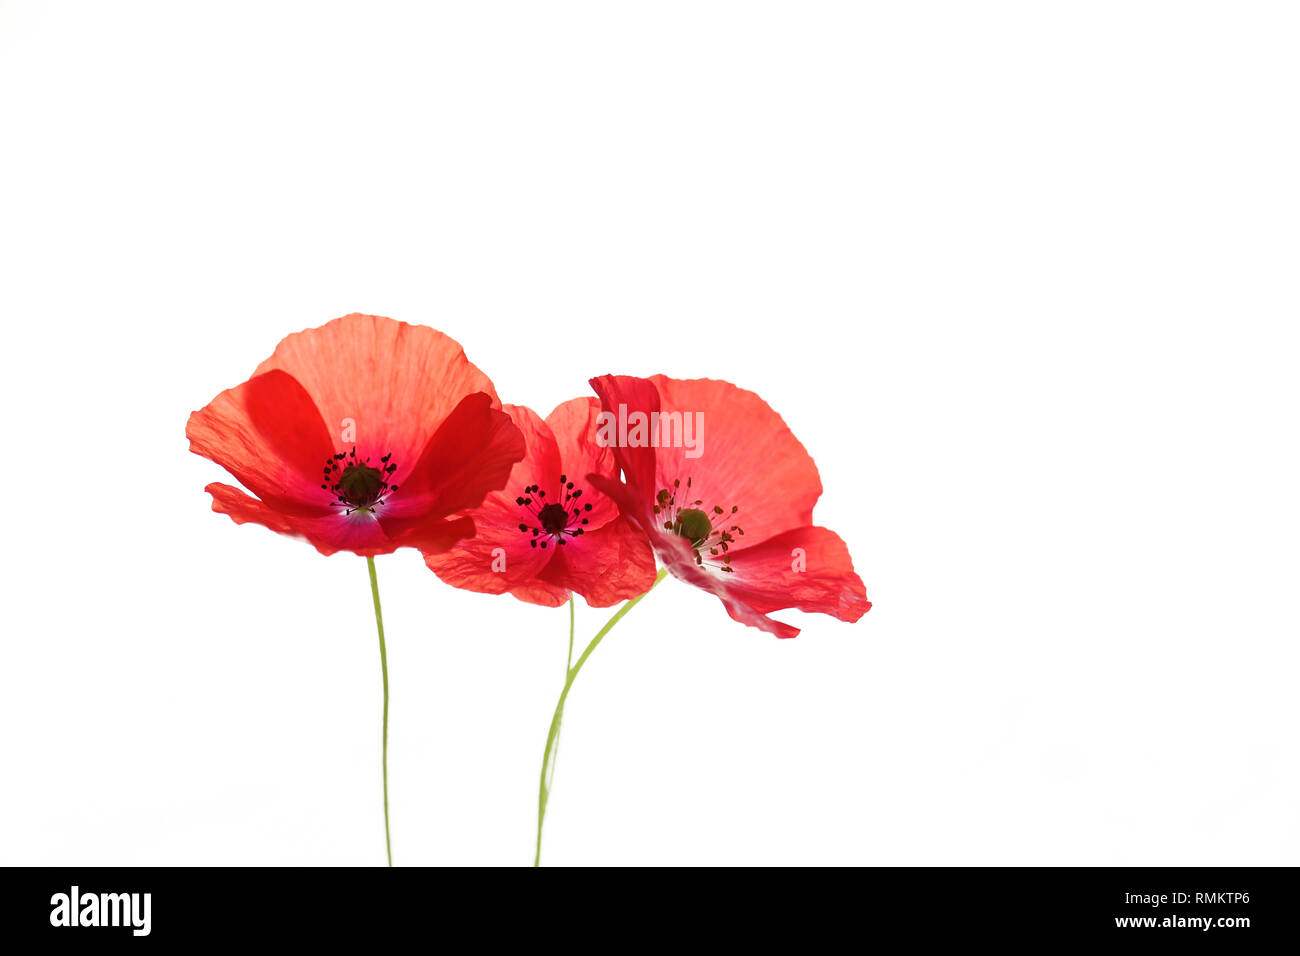 Poppy with red petals looks beautiful in bouquets - Stock Image